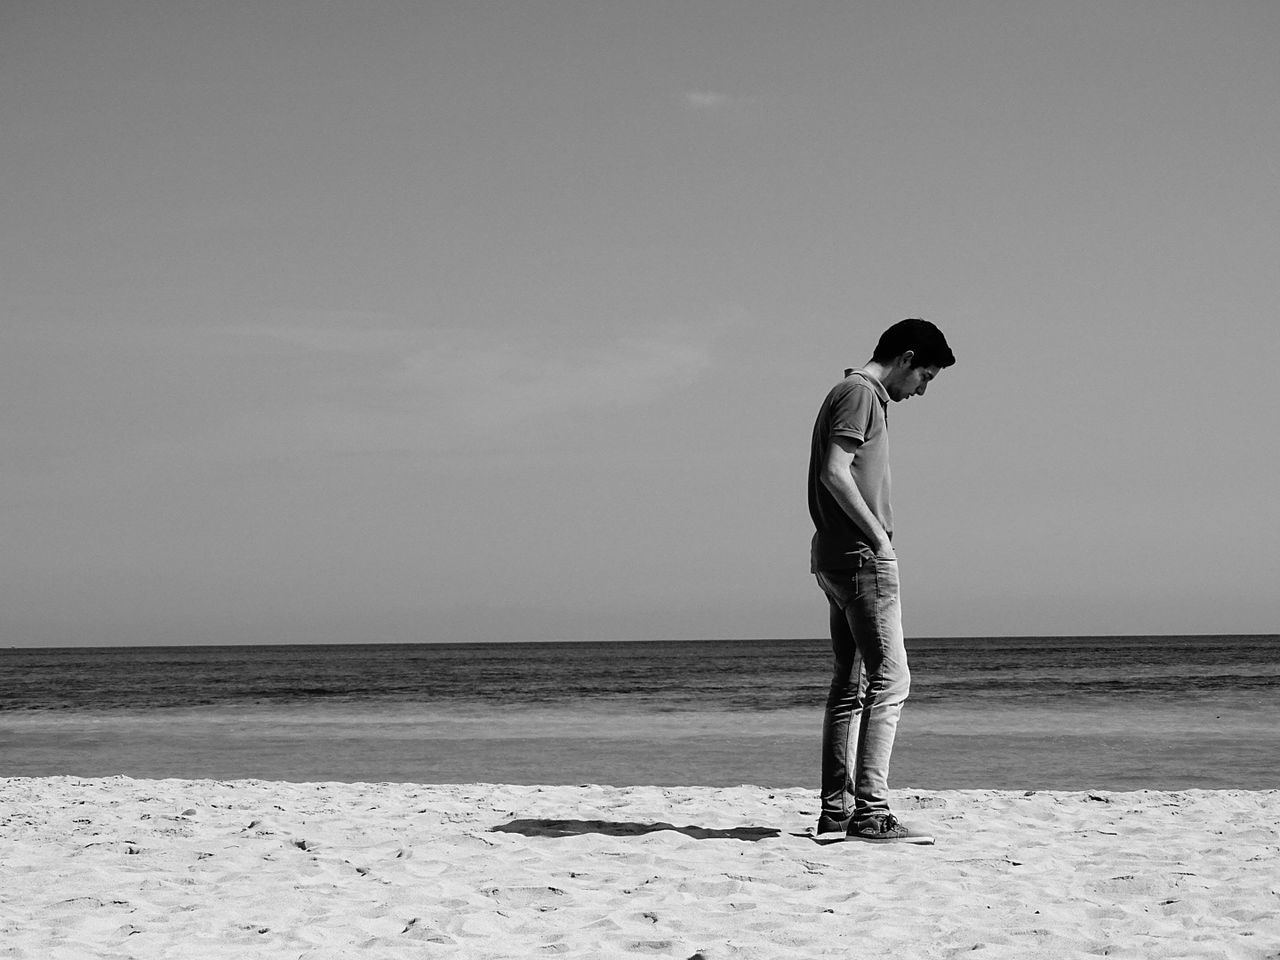 Alone is my name. Alone Beach Blackandwhite Art Full Length Looking Down Casual Clothing One Person Sitting People Outdoors Sand Sea Day Real People Young Adult Horizon Over Water Nature Adult Sky Only Men Adults Only Beach Summer